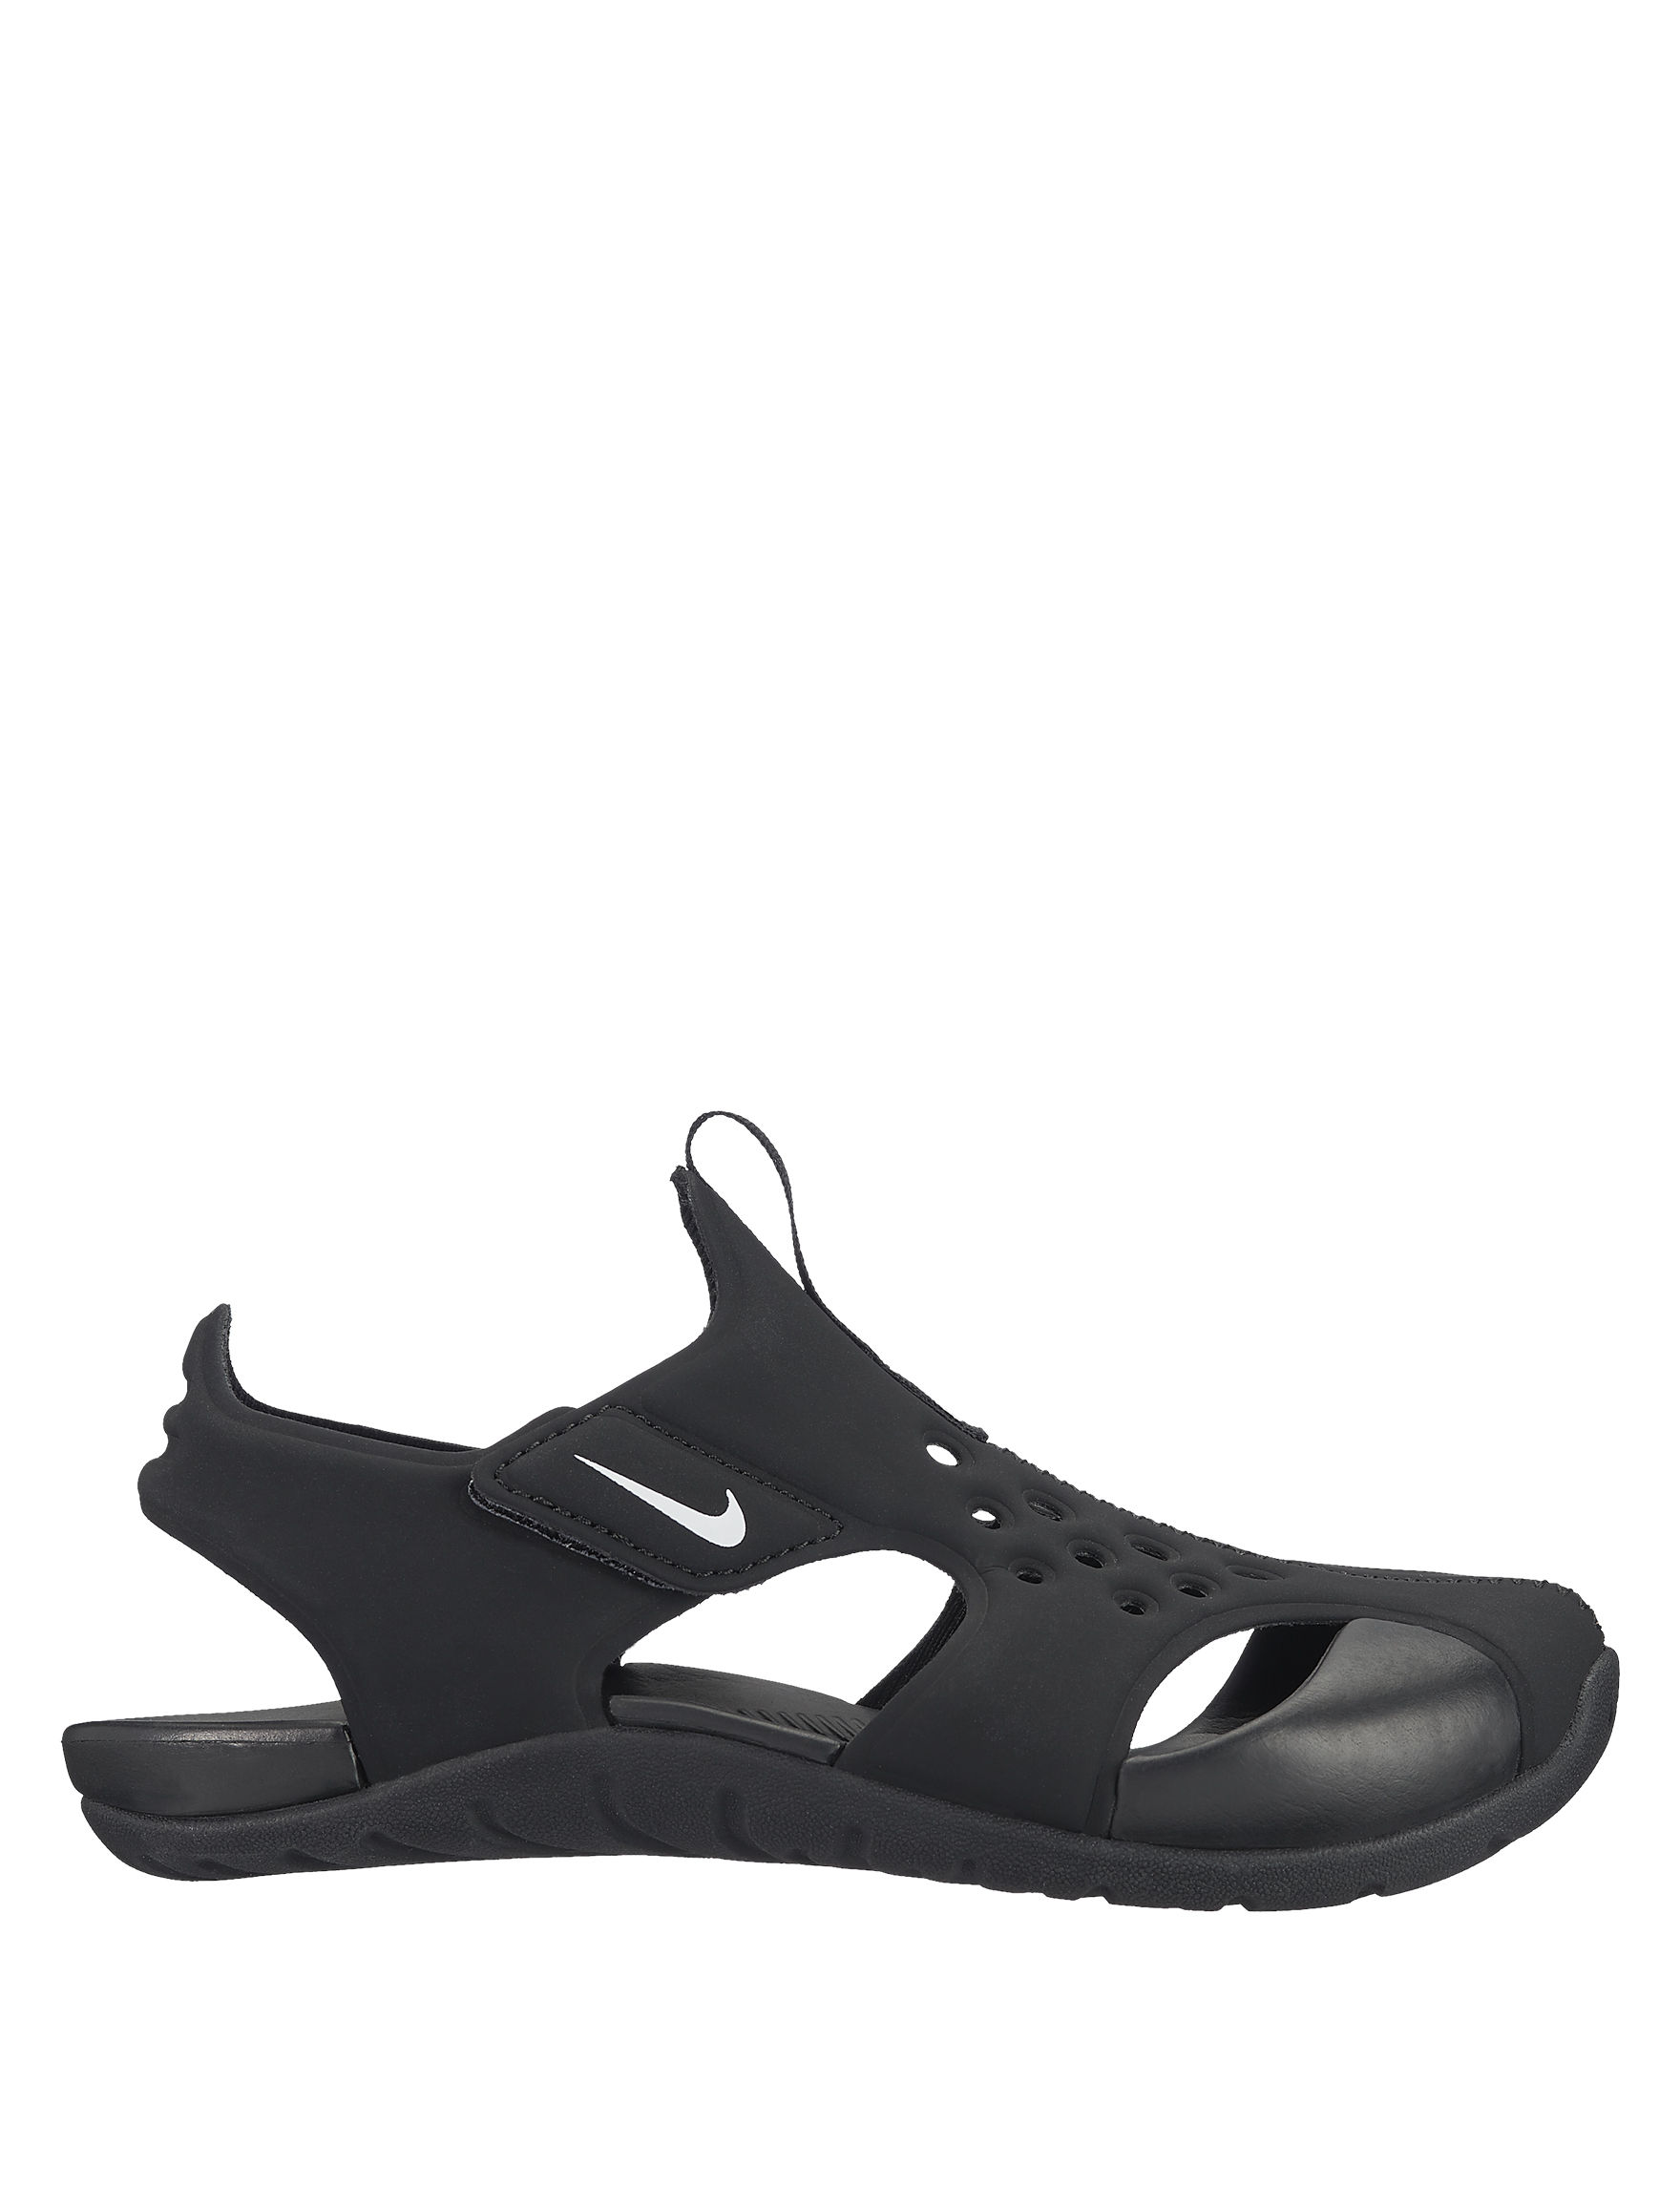 hot sale online 29938 4b4f3 Nike Sunray Protect 2 Sandals - Boys 11-3